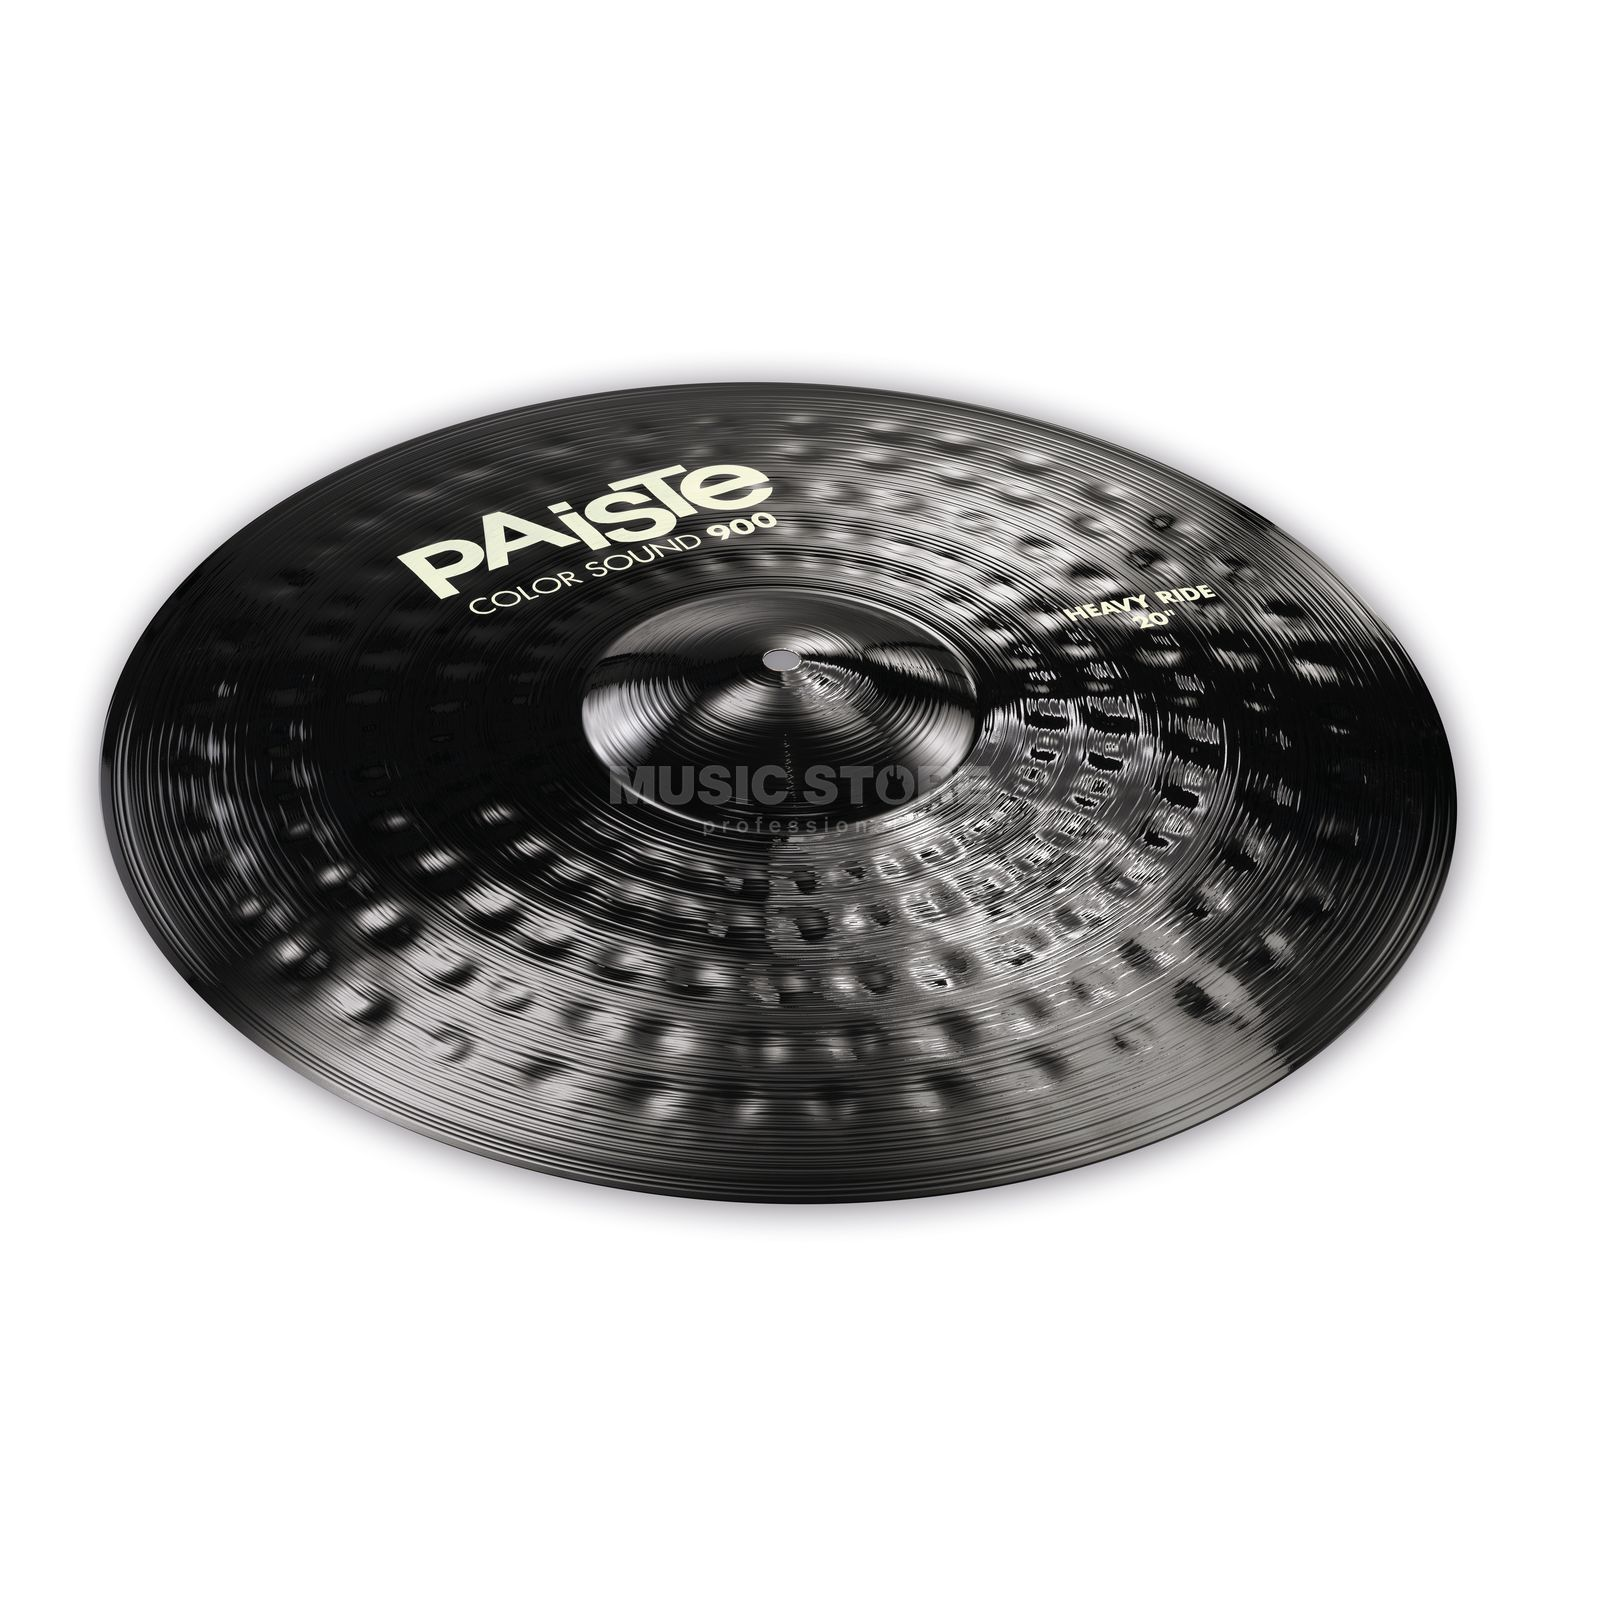 "Paiste CS 900 Heavy Ride 20"" Color Sound Black Produktbild"